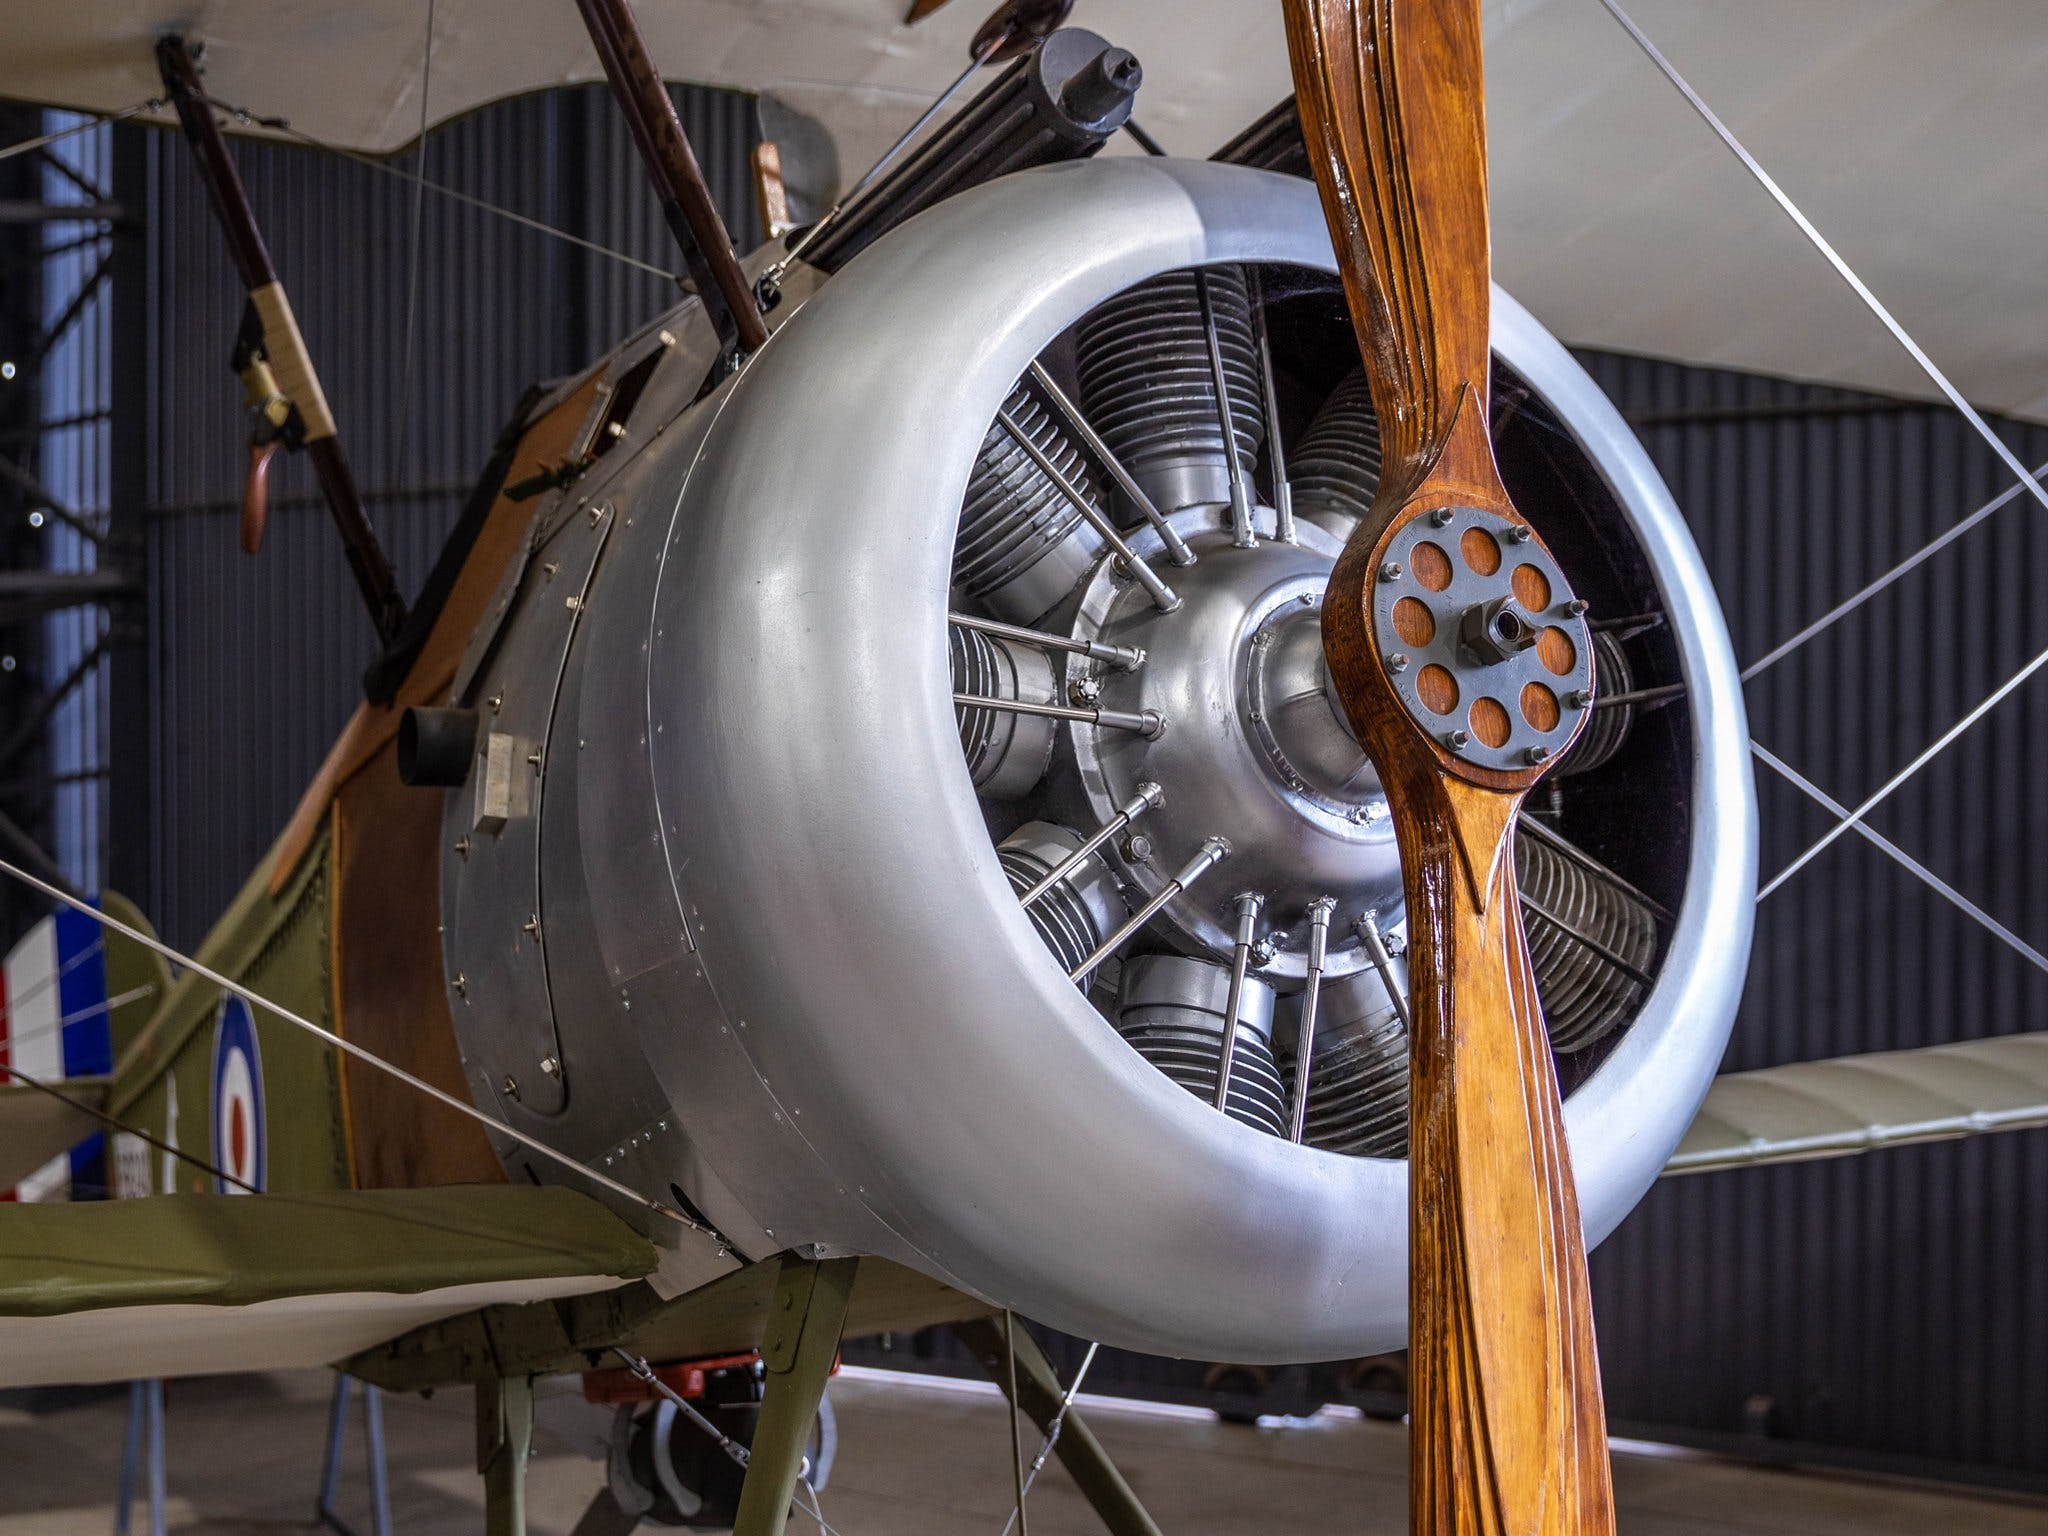 RAAF Amberley Aviation Heritage Centre - Accommodation in Brisbane